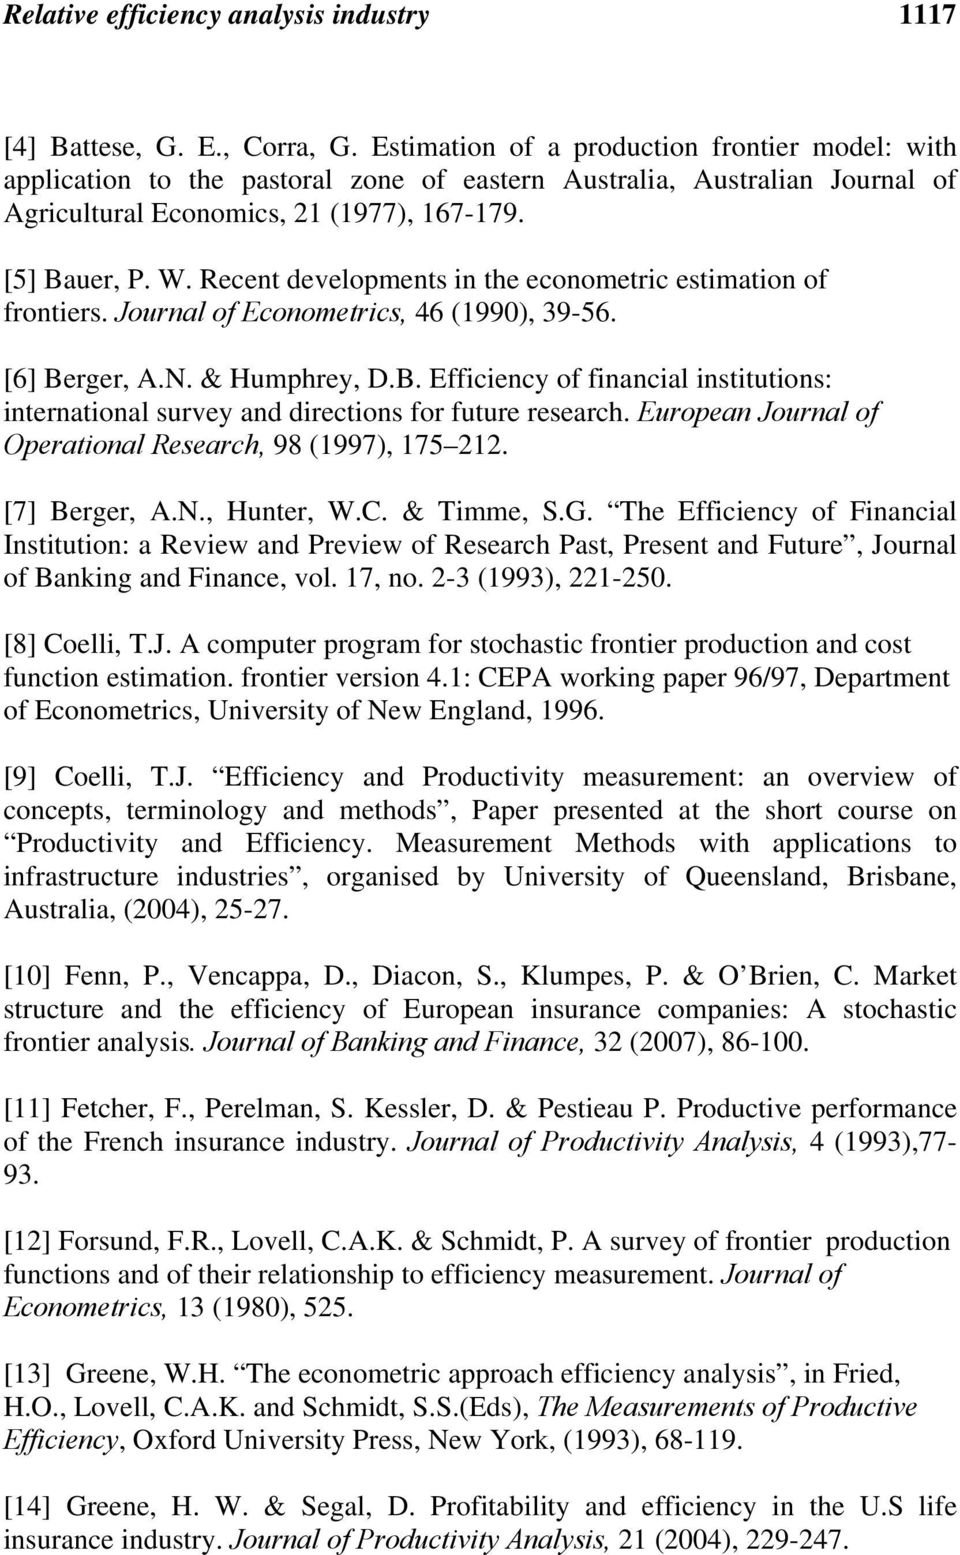 Recent developments in e econometric estimation of frontiers. Journal of Econometrics, 46 (1990), 39-56. [6] Be